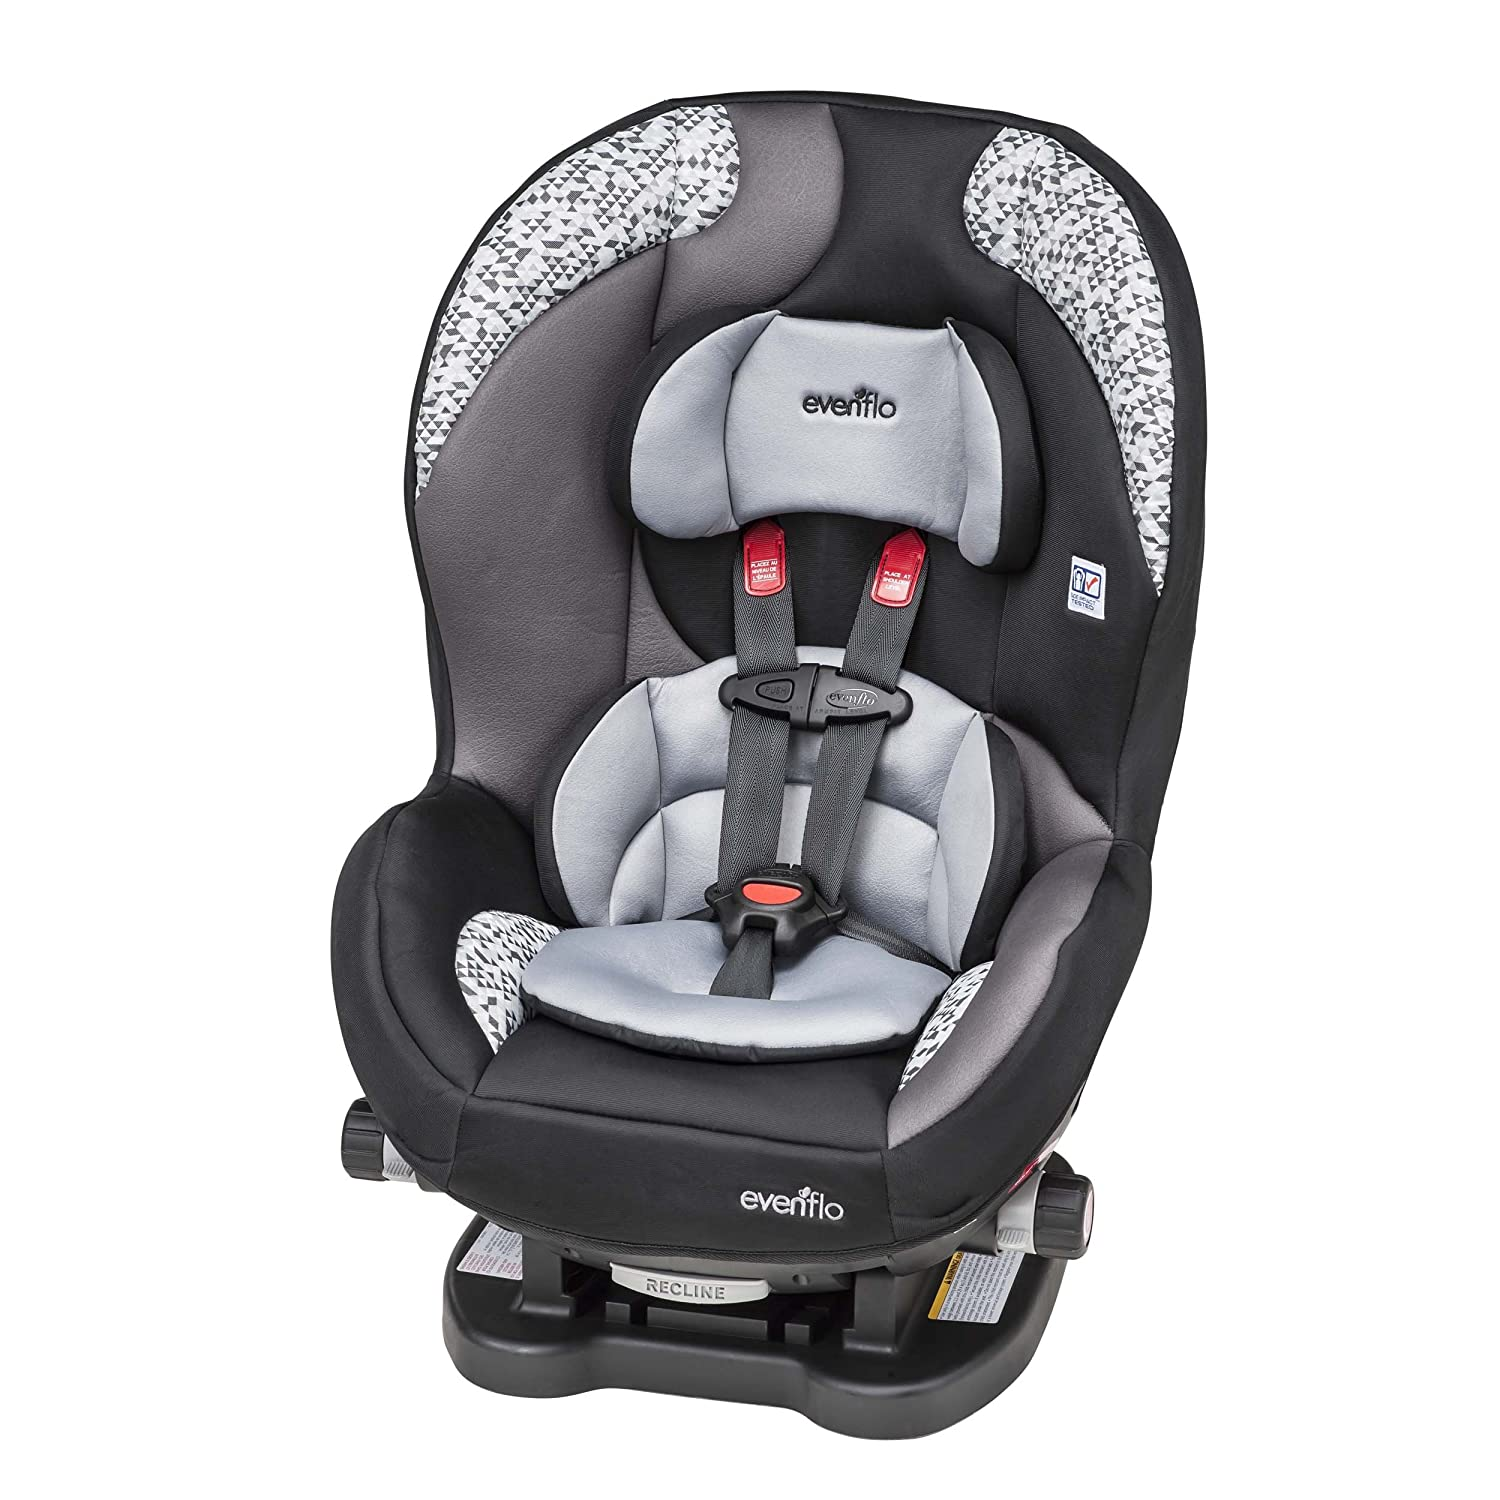 Amazon Evenflo Triumph65 LX Convertible Car Seat Mosaic Discontinued By Manufacturer Child Safety Seats Baby